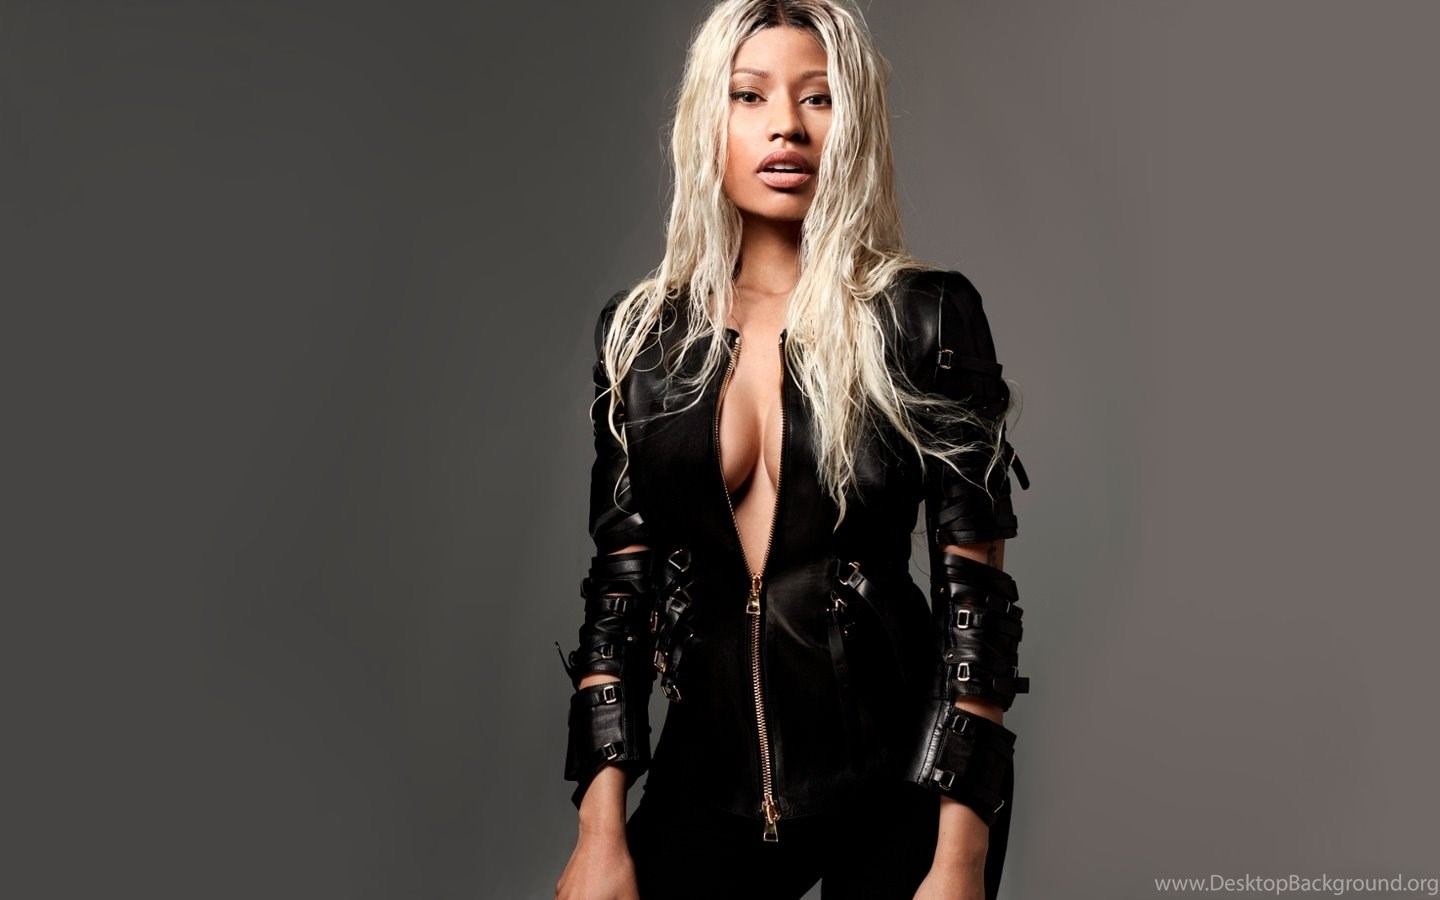 Nicki minaj for elle nicki minaj wallpapers 36703388 fanpop widescreen voltagebd Image collections